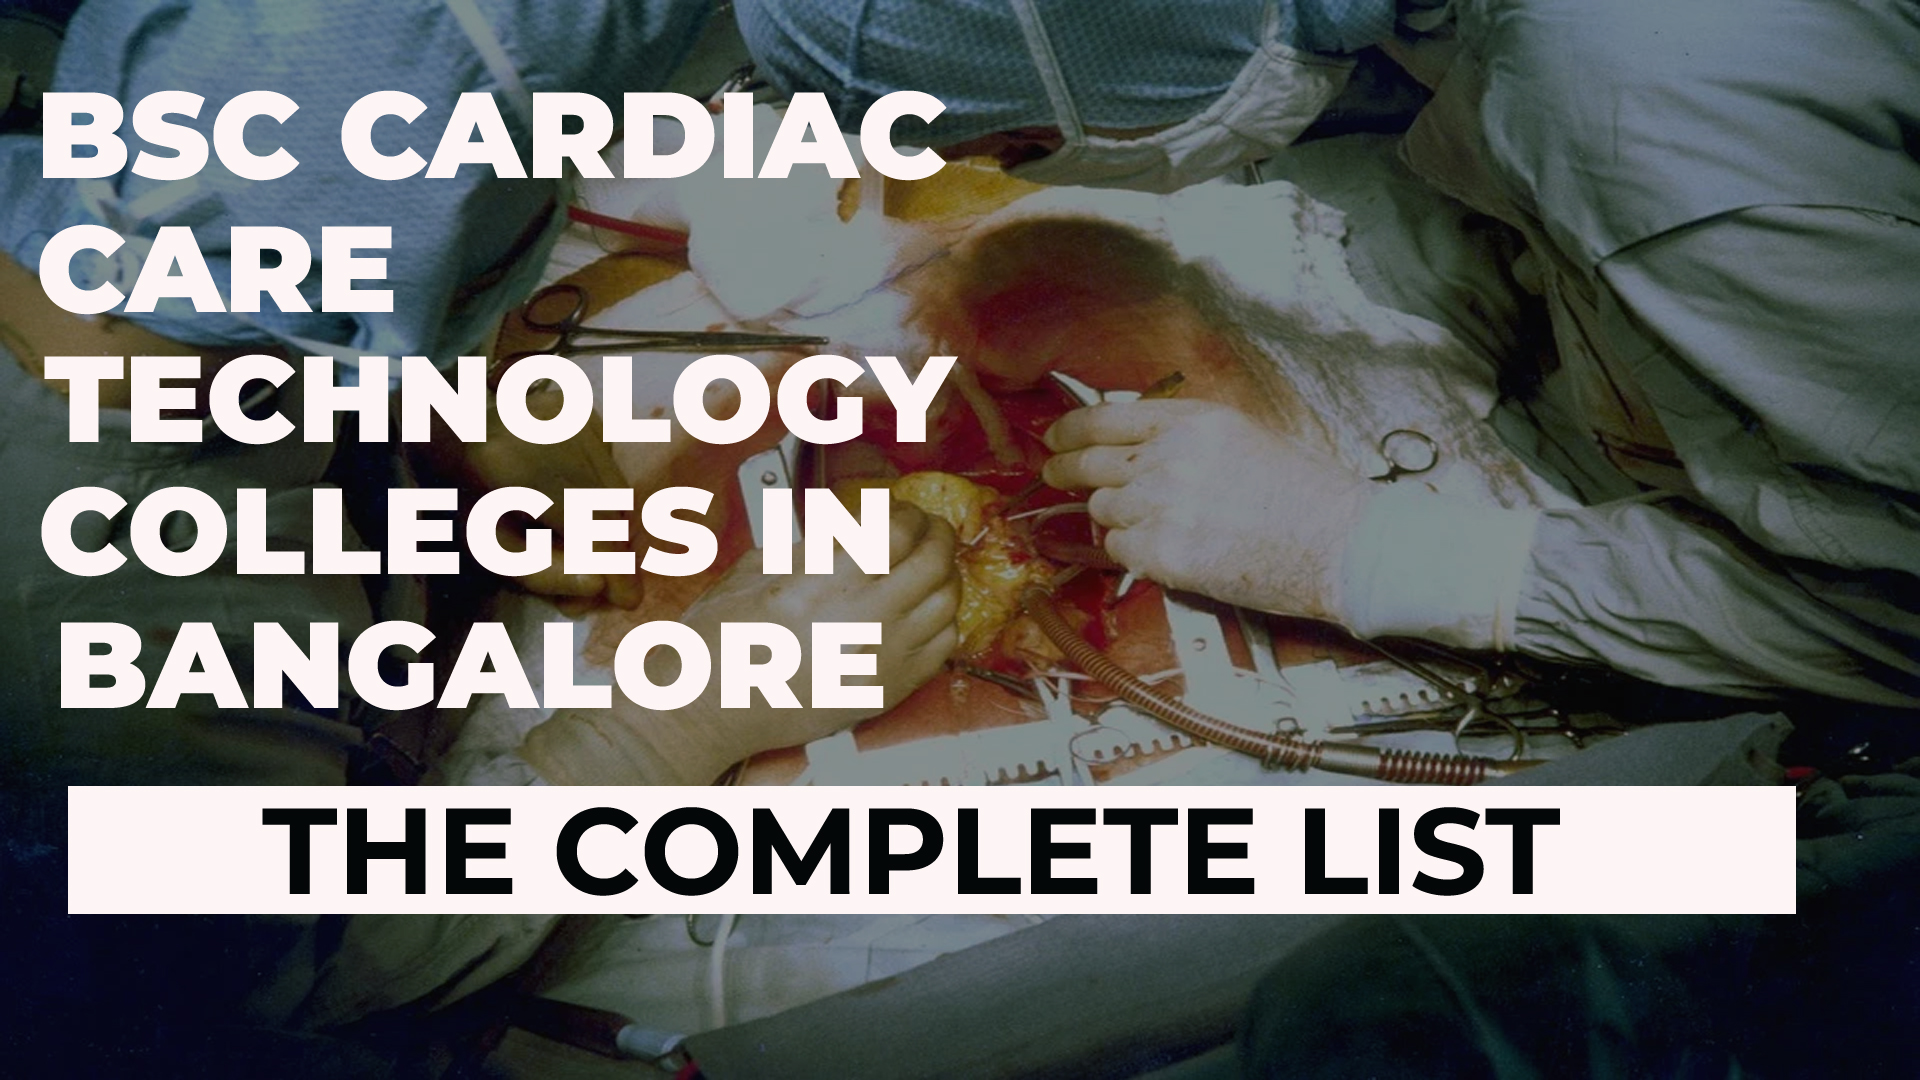 BSc Cardiac Care Technology Colleges in Bangalore